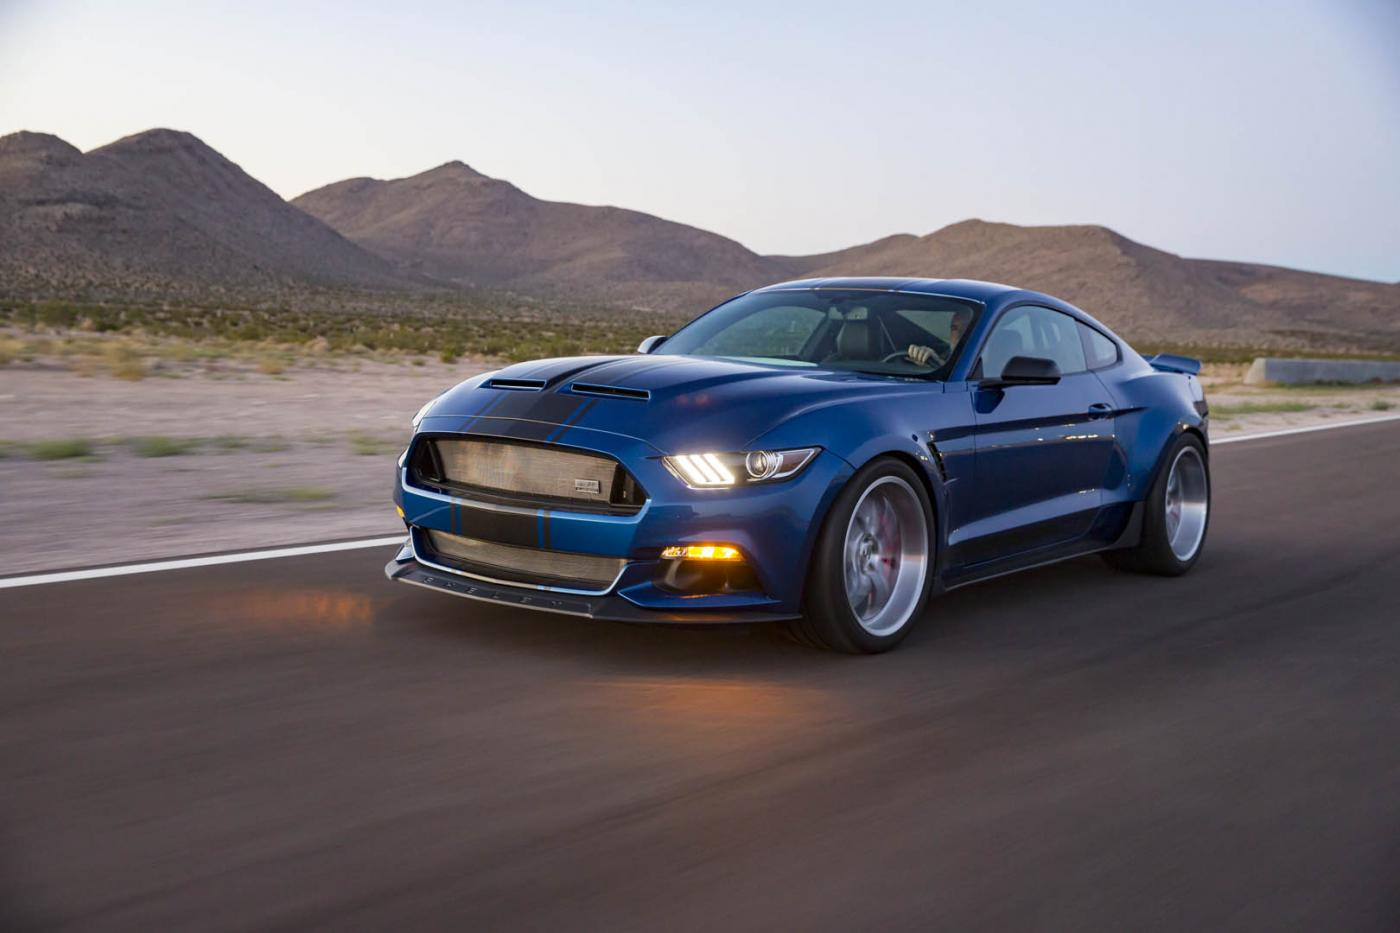 shelby american s new concept car is a widebody mustang autoevolution. Black Bedroom Furniture Sets. Home Design Ideas